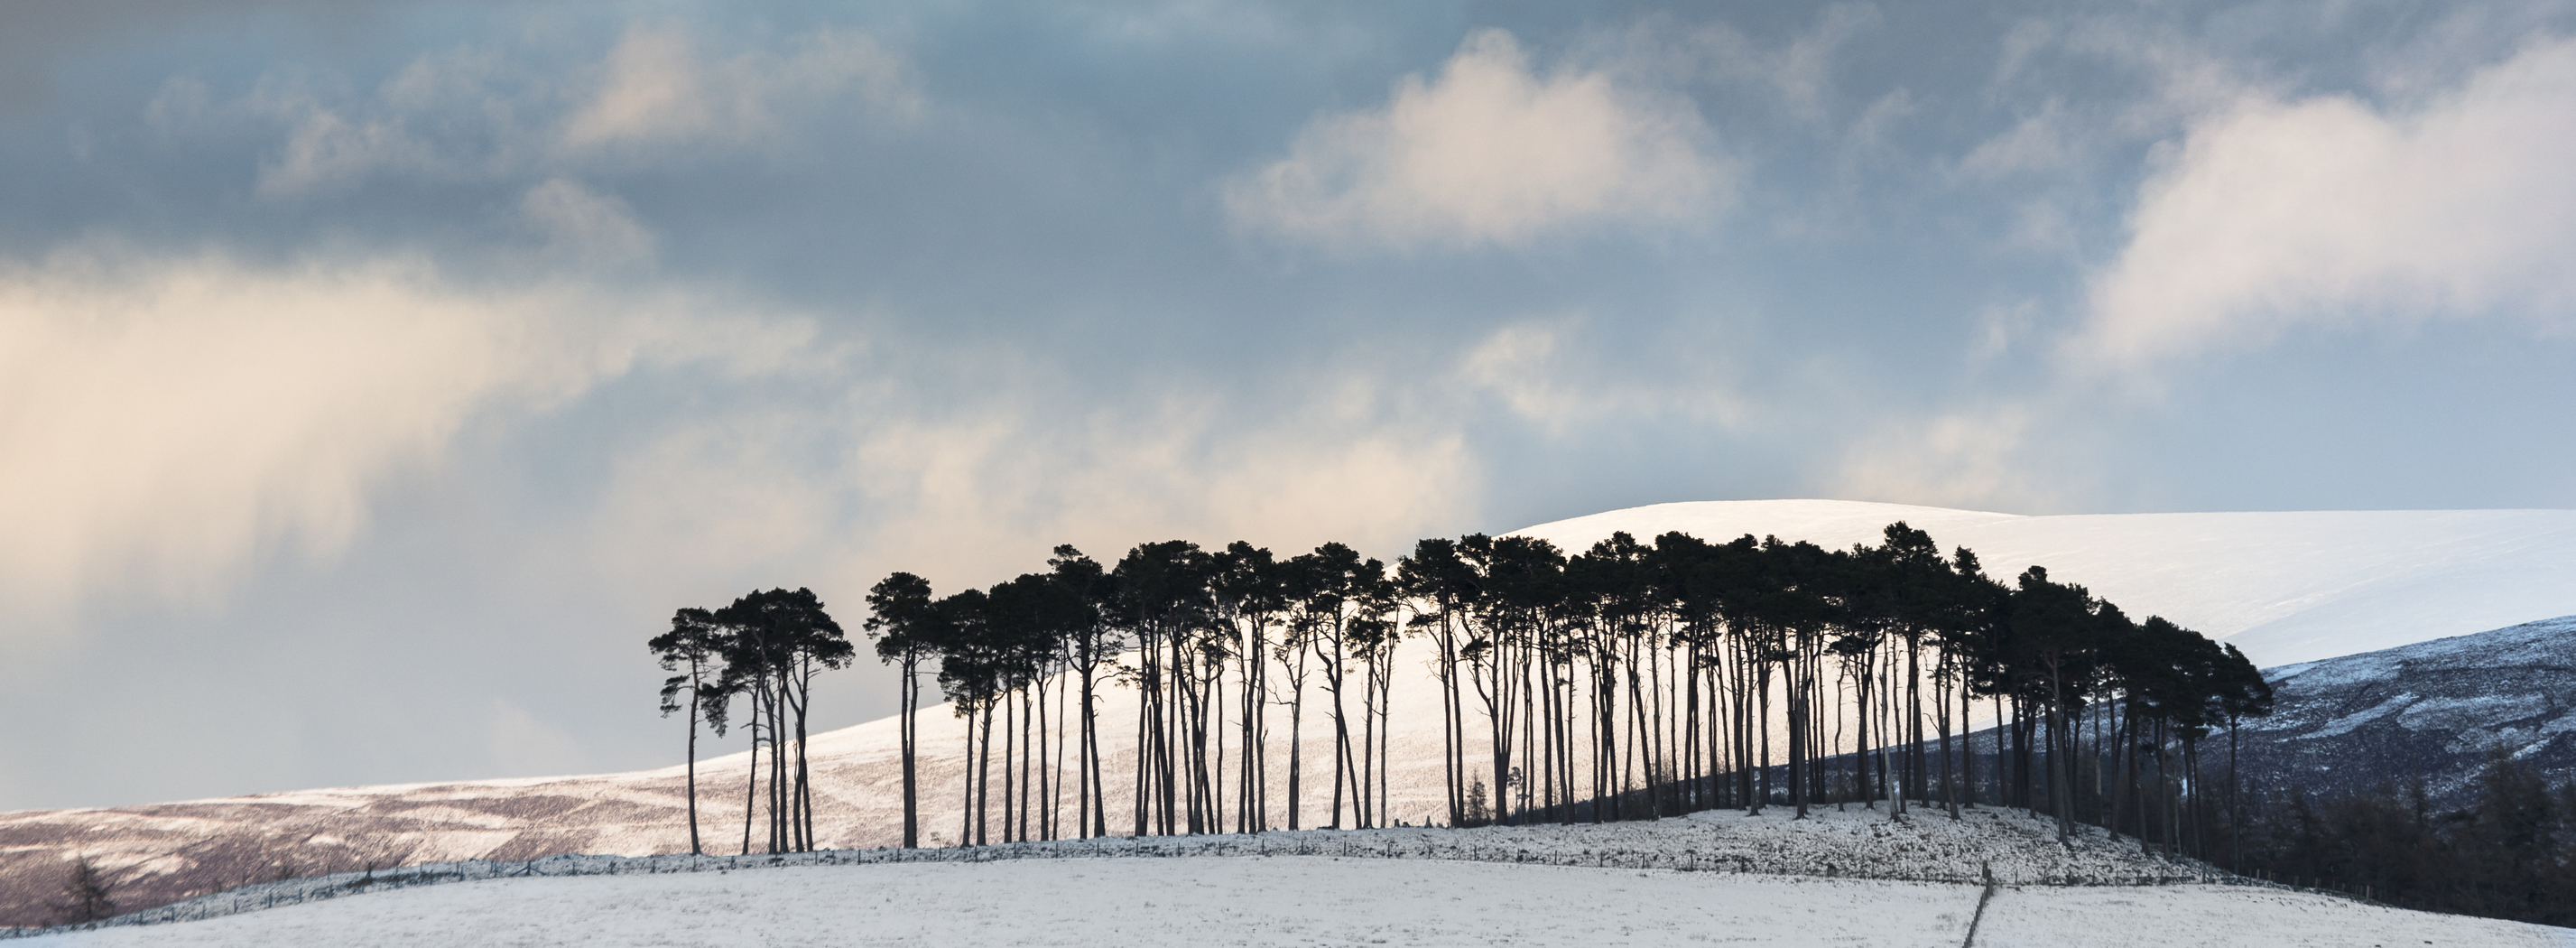 Pines on the Braes of Abernethy in the Cairngorms National Park of Scotland.